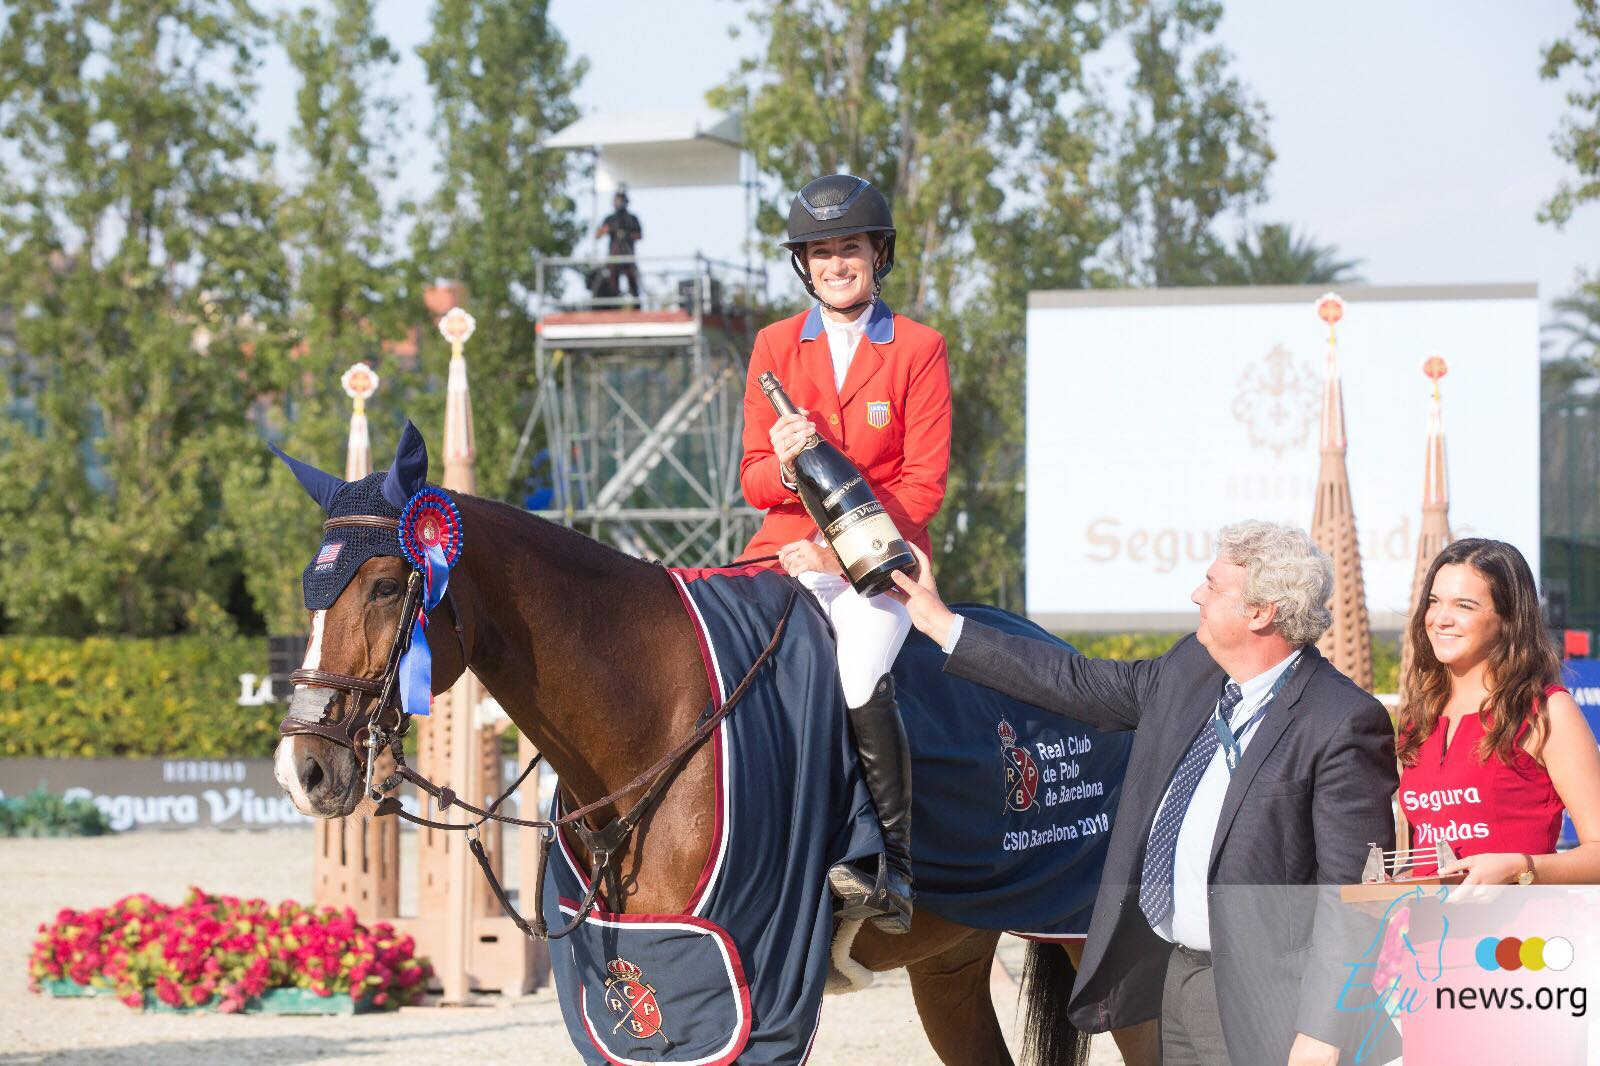 Springsteen flies to victory in Longines Grand Prix qualifier Falsterbo